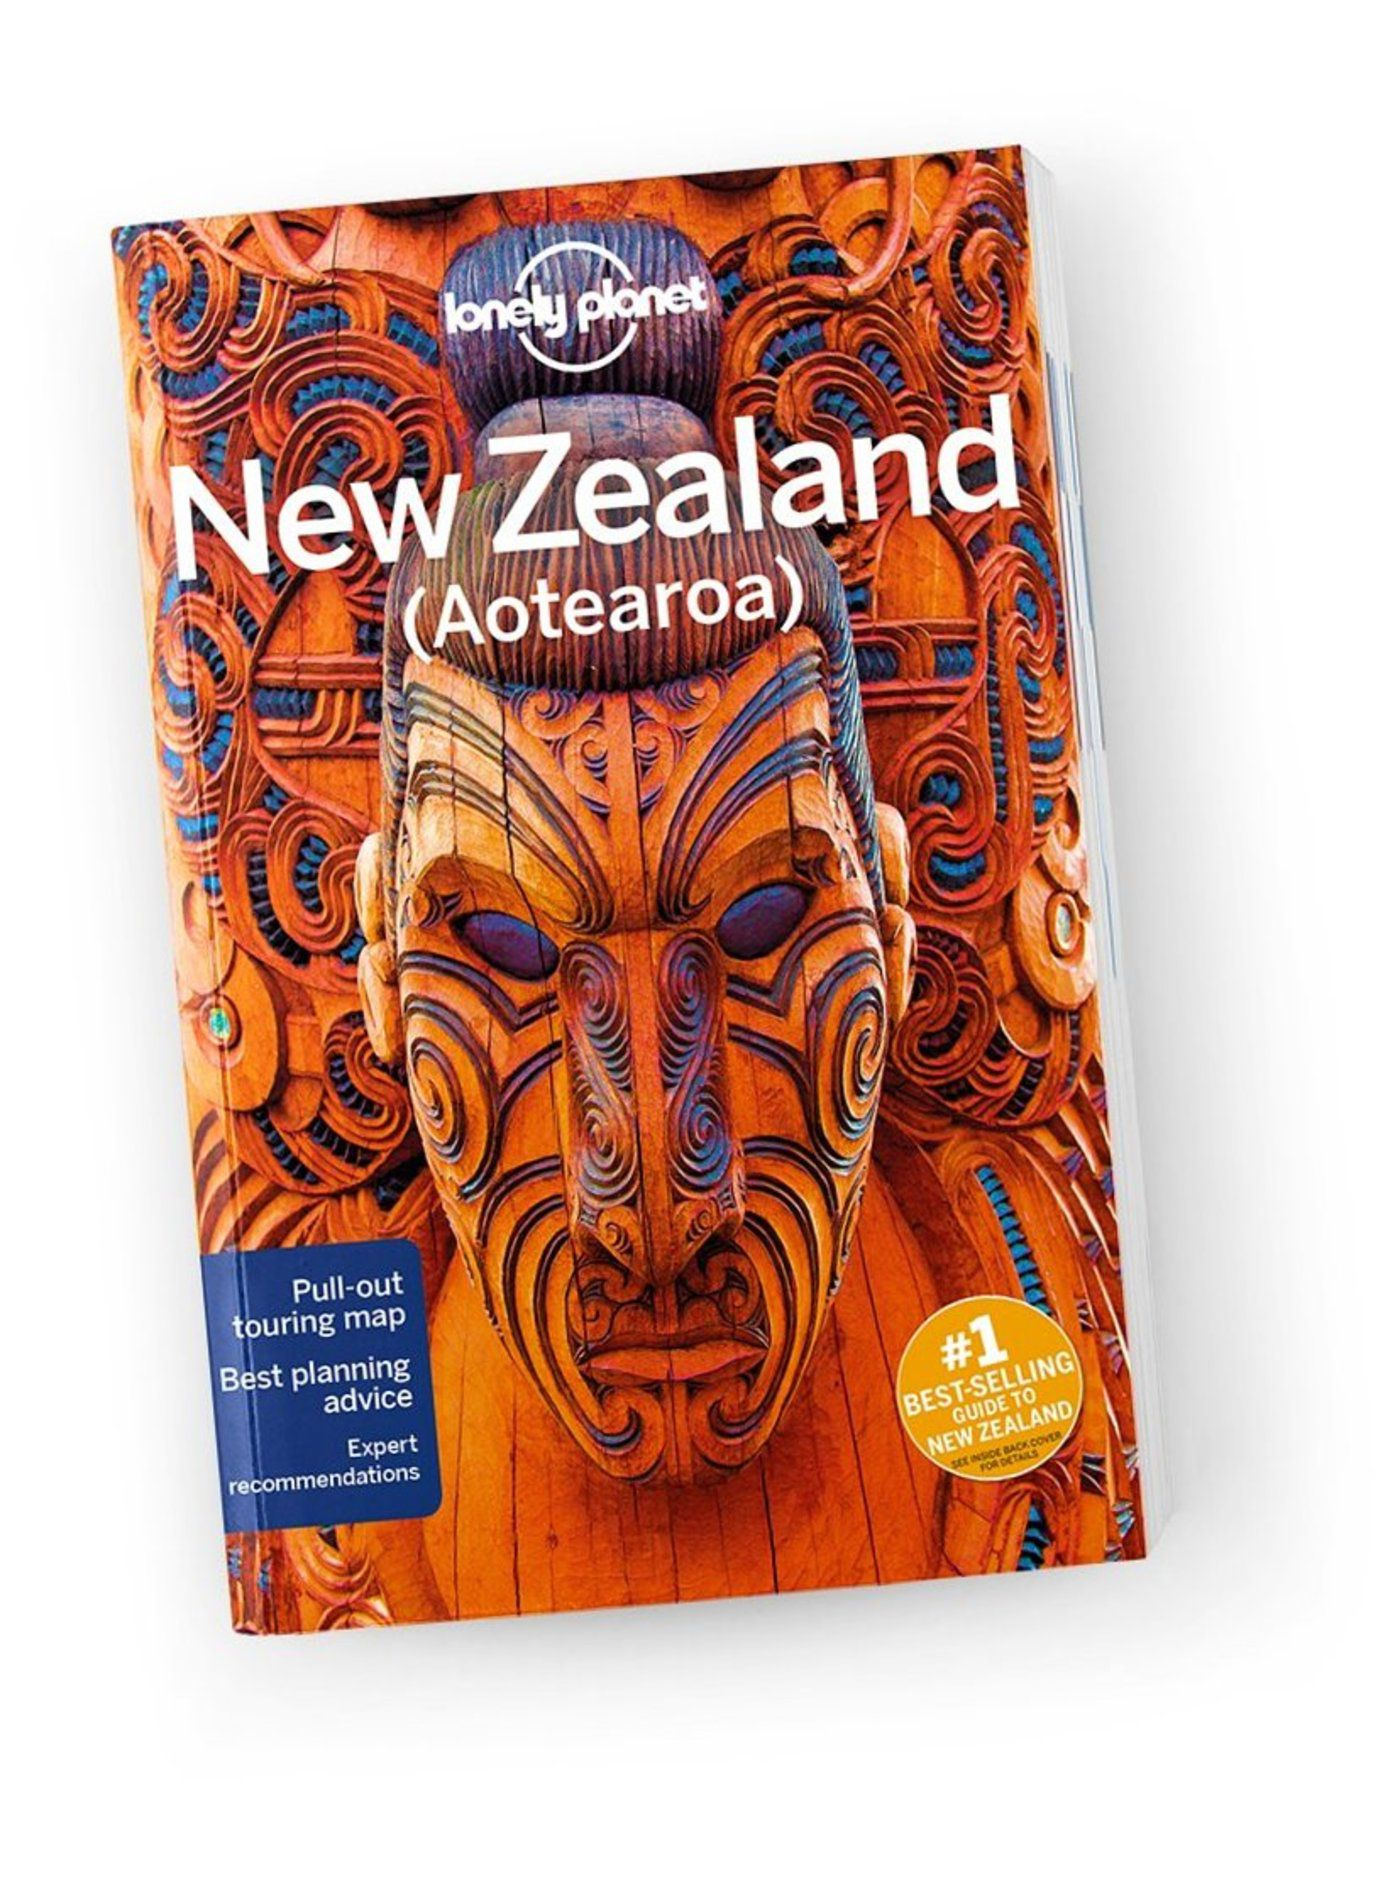 New Zealand travel guide - 19th edition